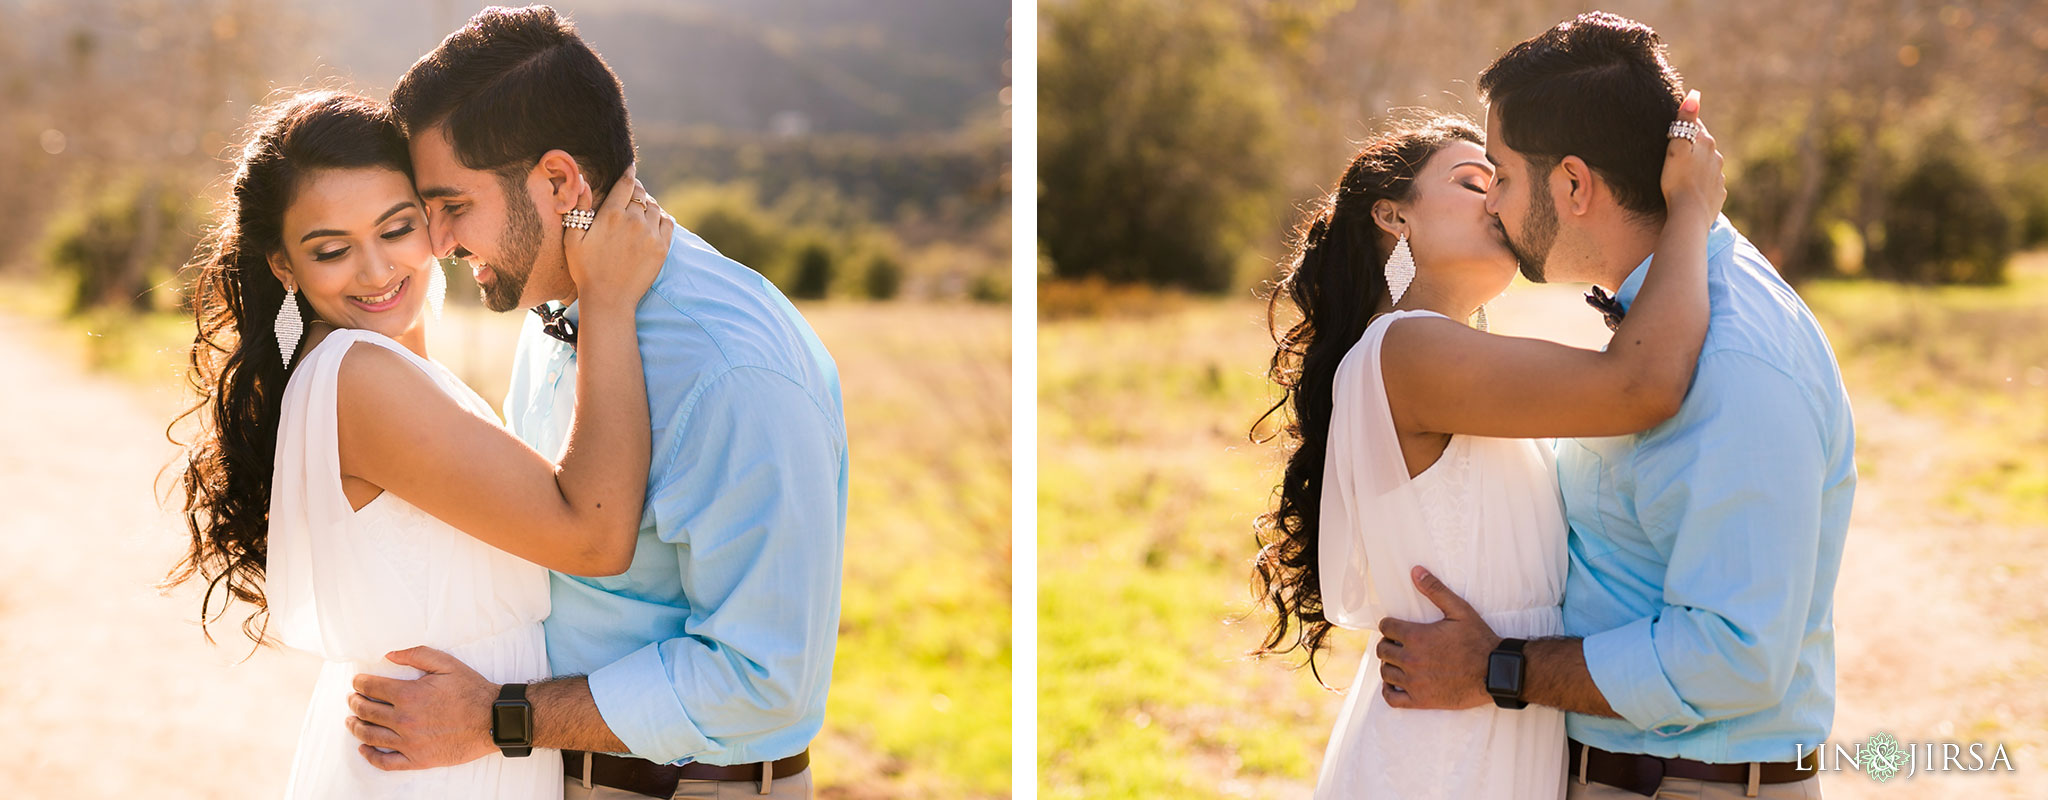 02 james dilley preserve orange county engagement photography